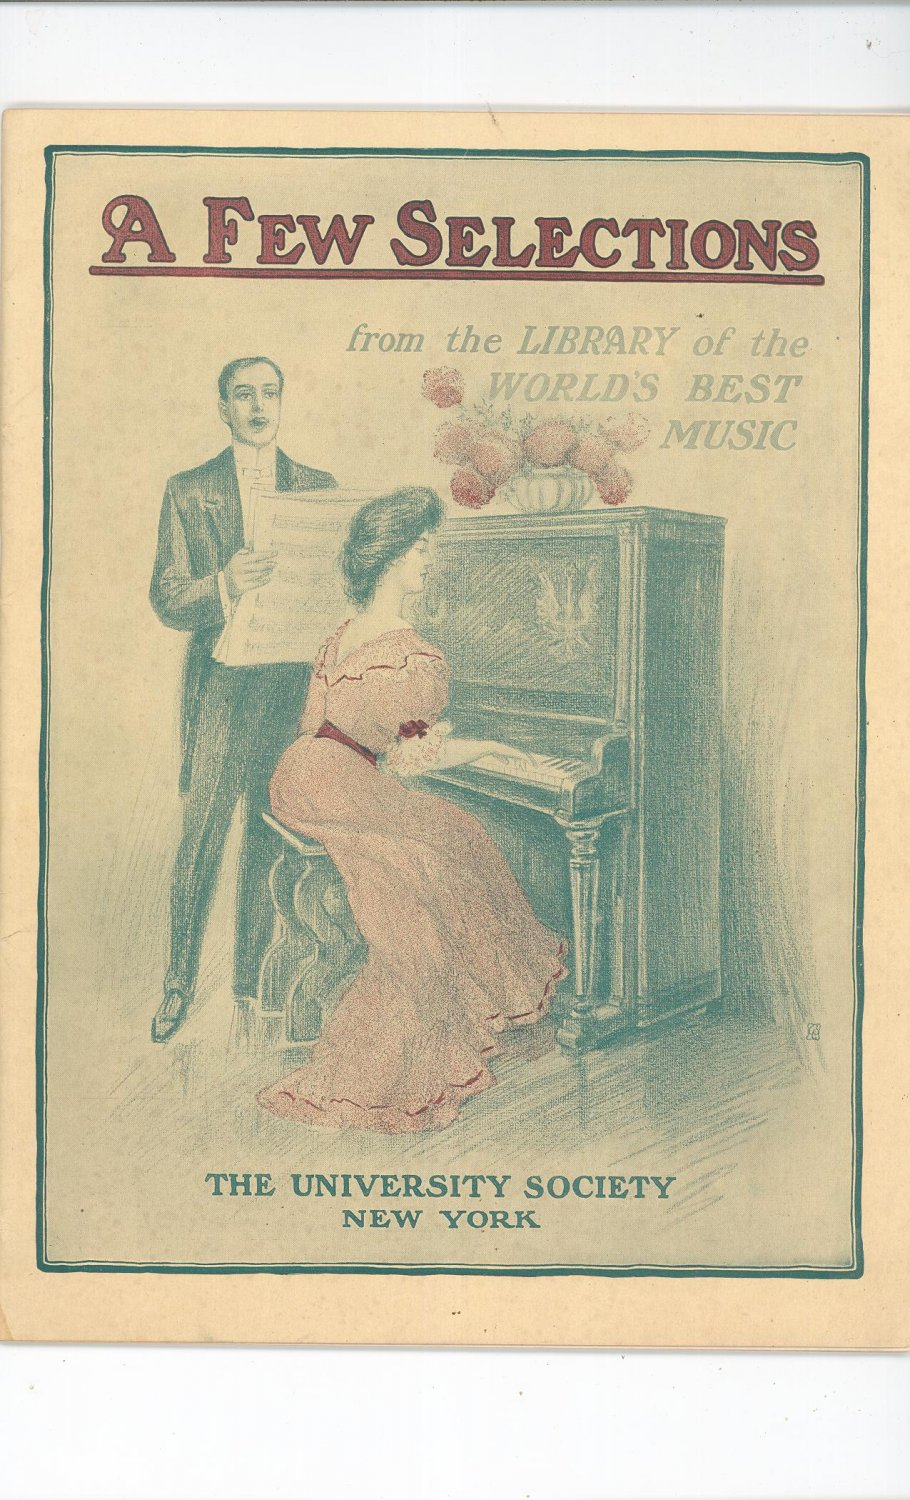 Vintage A Few Selections The University Society NY from Library World's Best Music